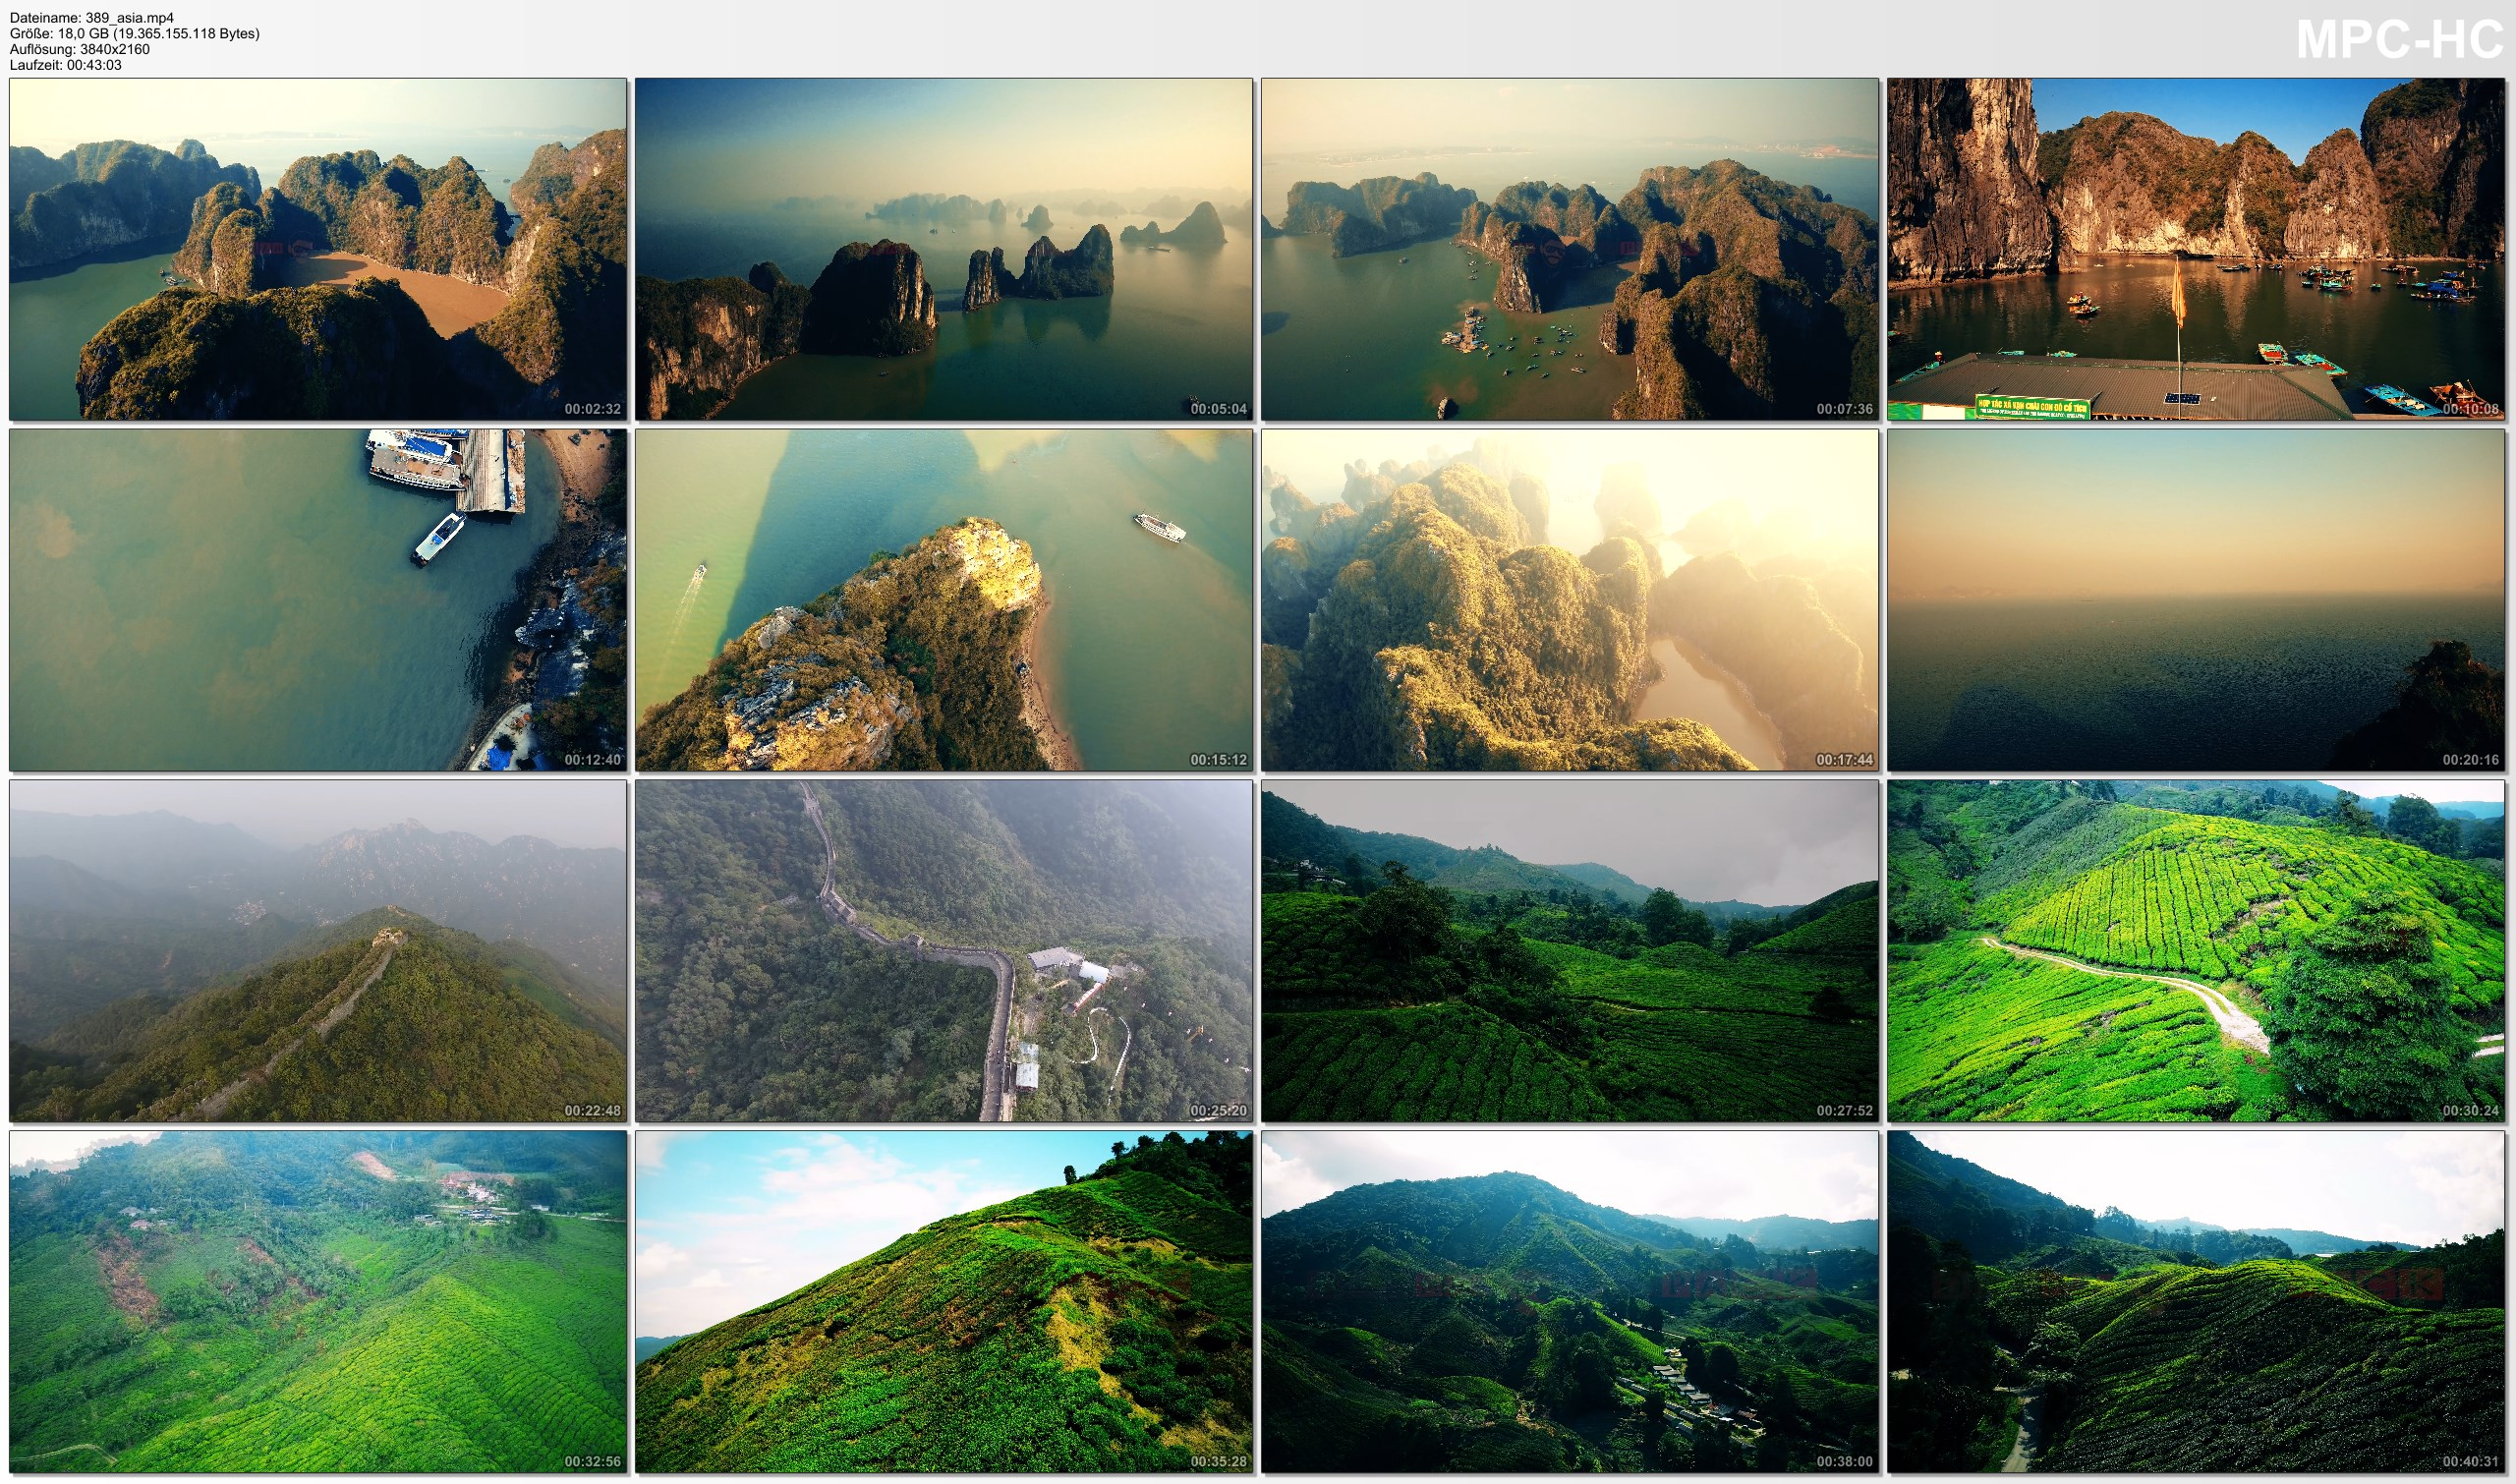 Drone Pictures from Video 【4K】Drone Footage | Natural Wonders of Earth *EXTENDED* 2019 Cinematic Aerial Halong Bay Great Wall